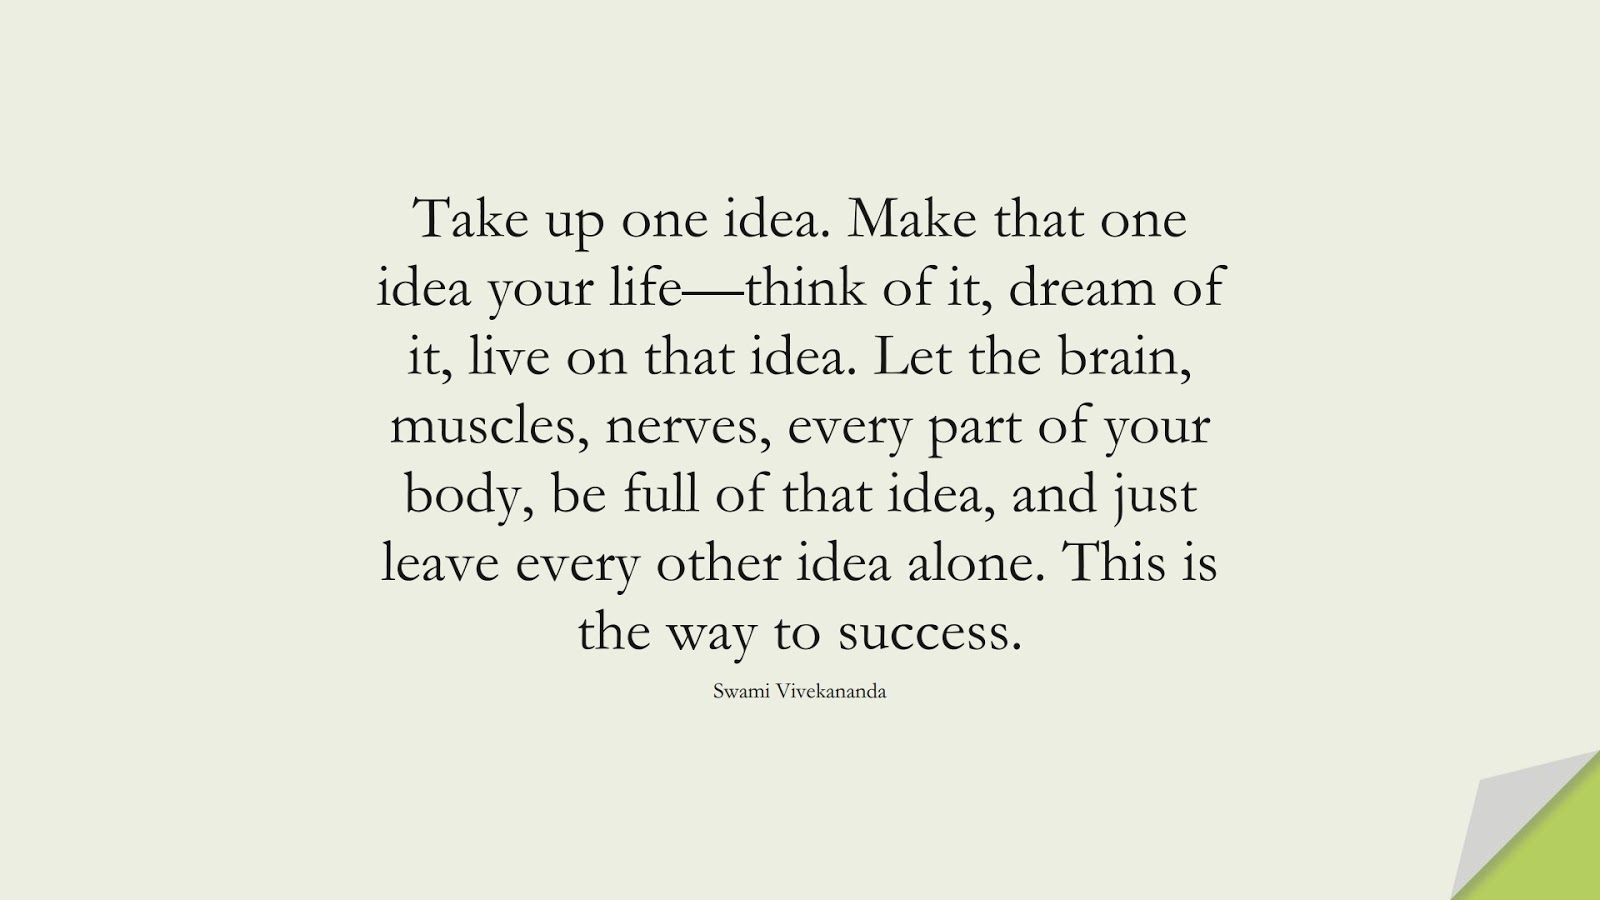 Take up one idea. Make that one idea your life—think of it, dream of it, live on that idea. Let the brain, muscles, nerves, every part of your body, be full of that idea, and just leave every other idea alone. This is the way to success. (Swami Vivekananda);  #MotivationalQuotes